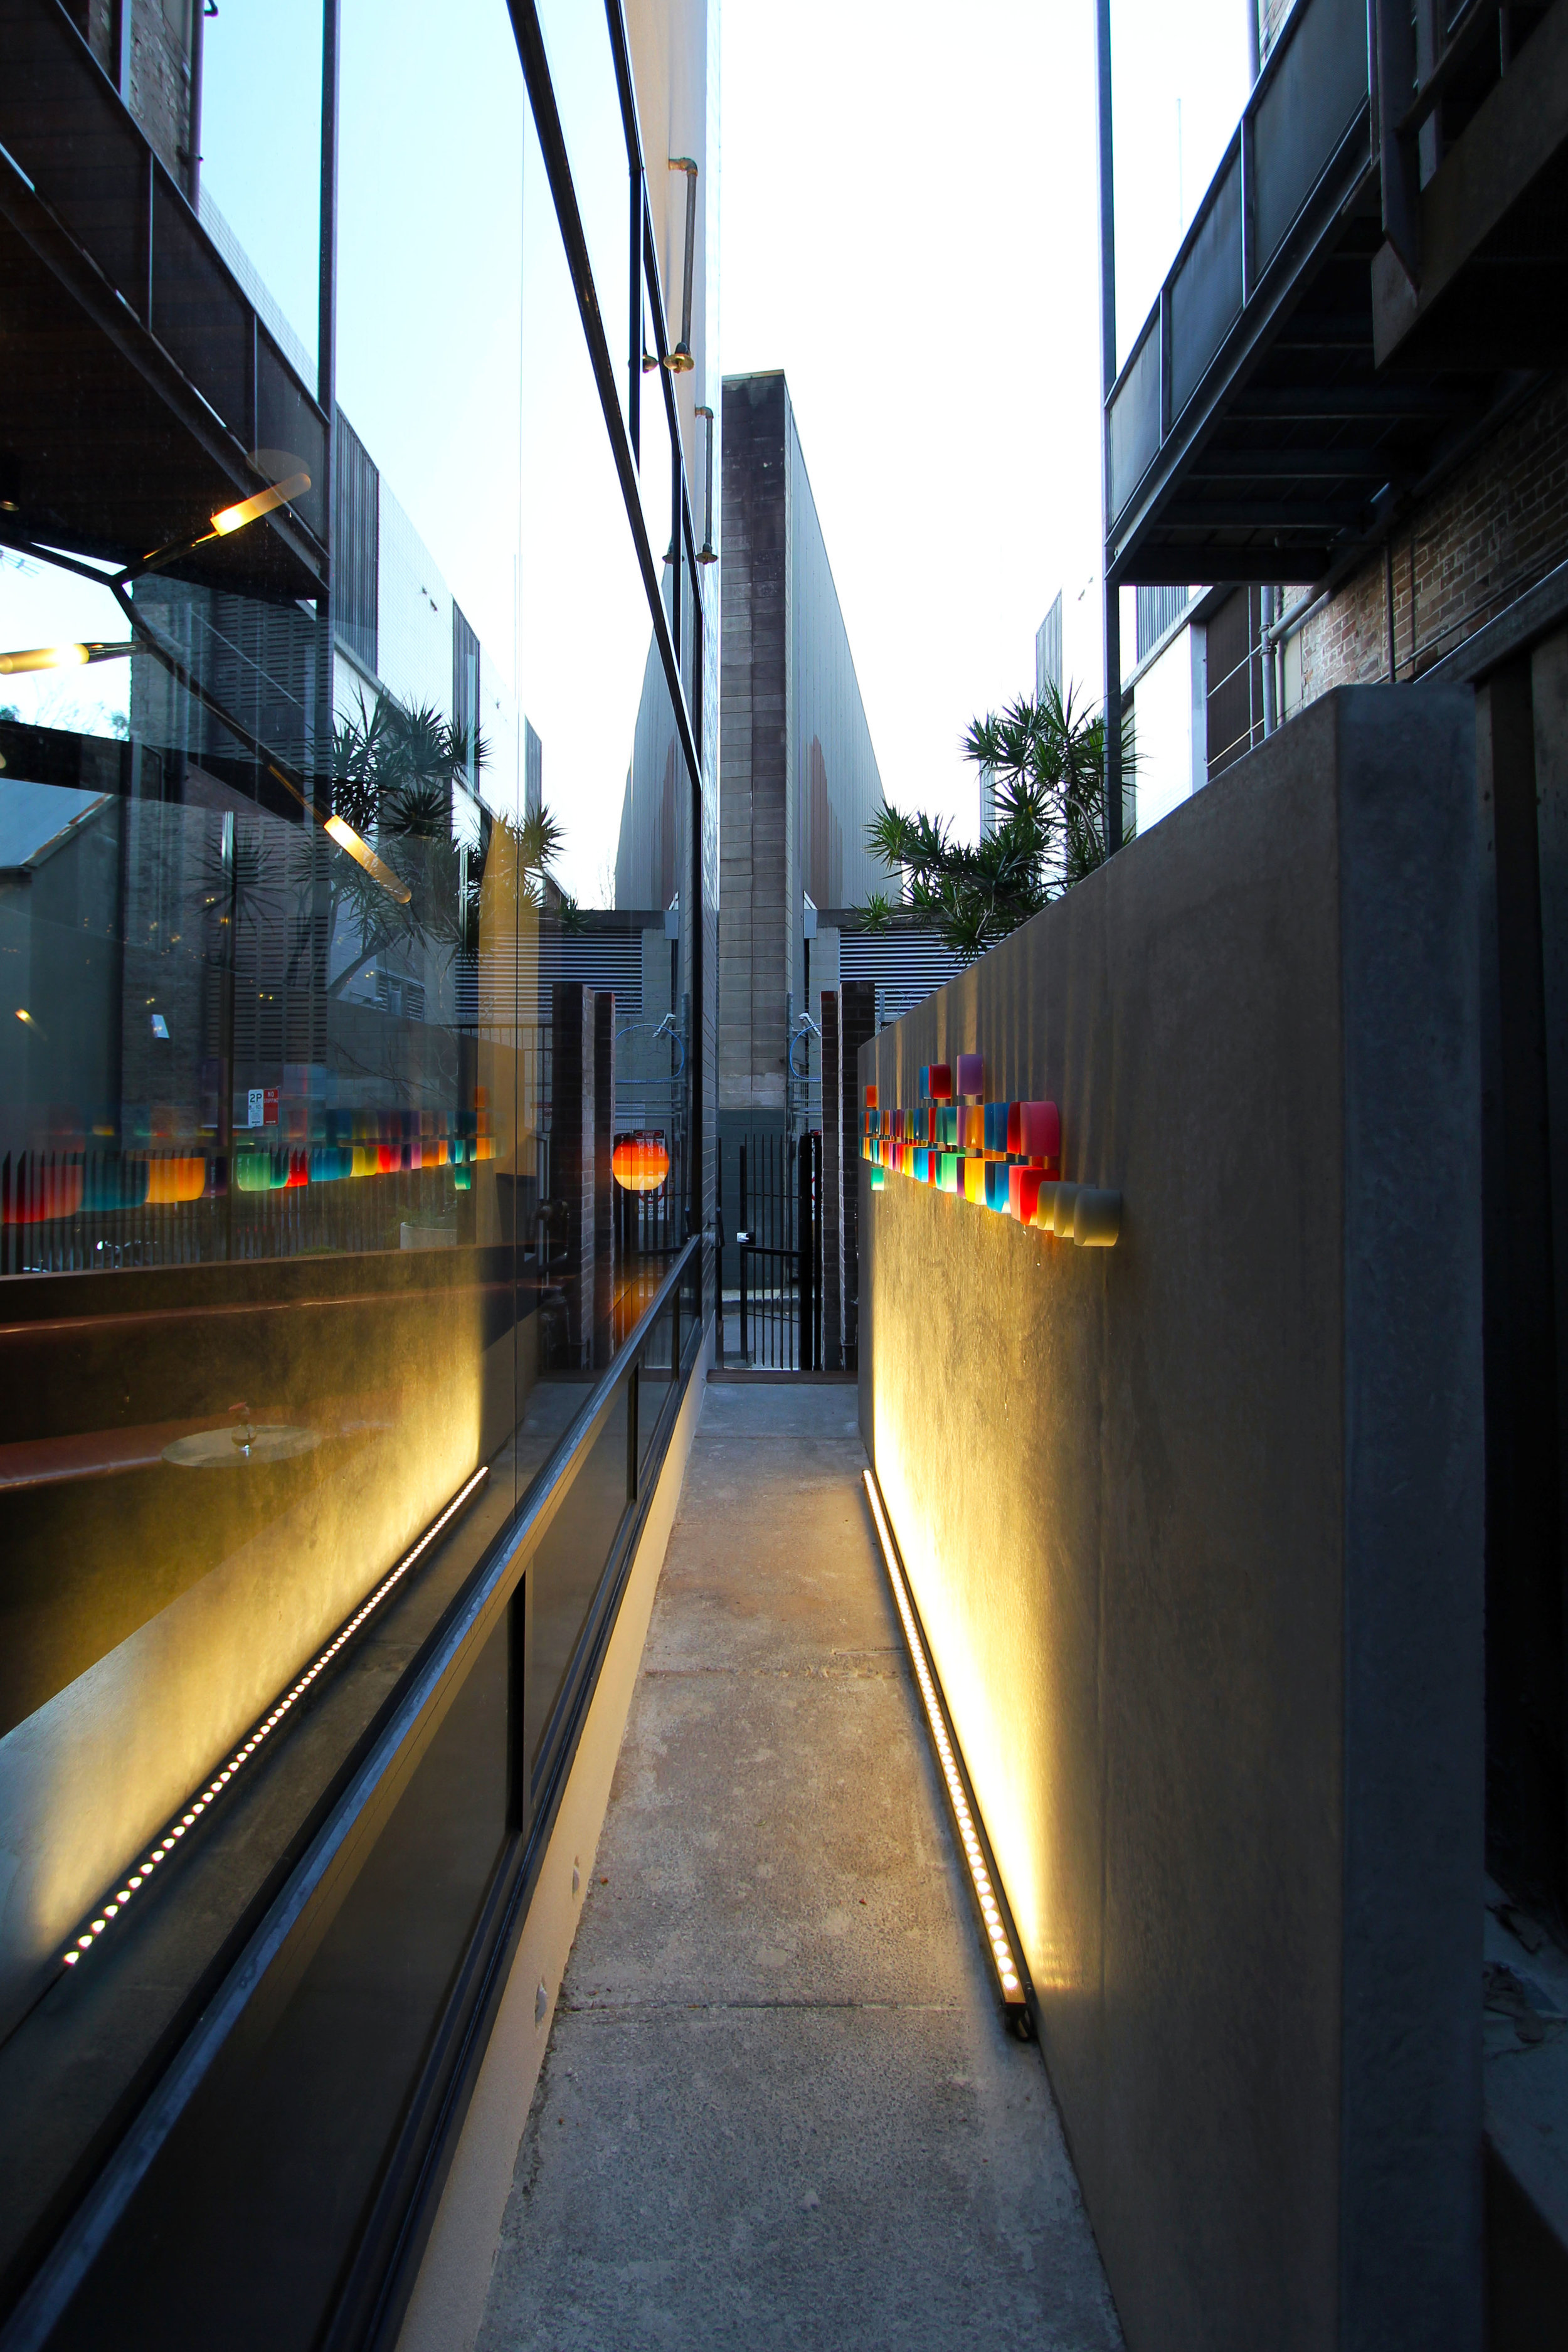 TYA Photography | Little Albion Guest House | All You Need Is Love Laneway | Winter | Sunset 01 | A8481.jpg